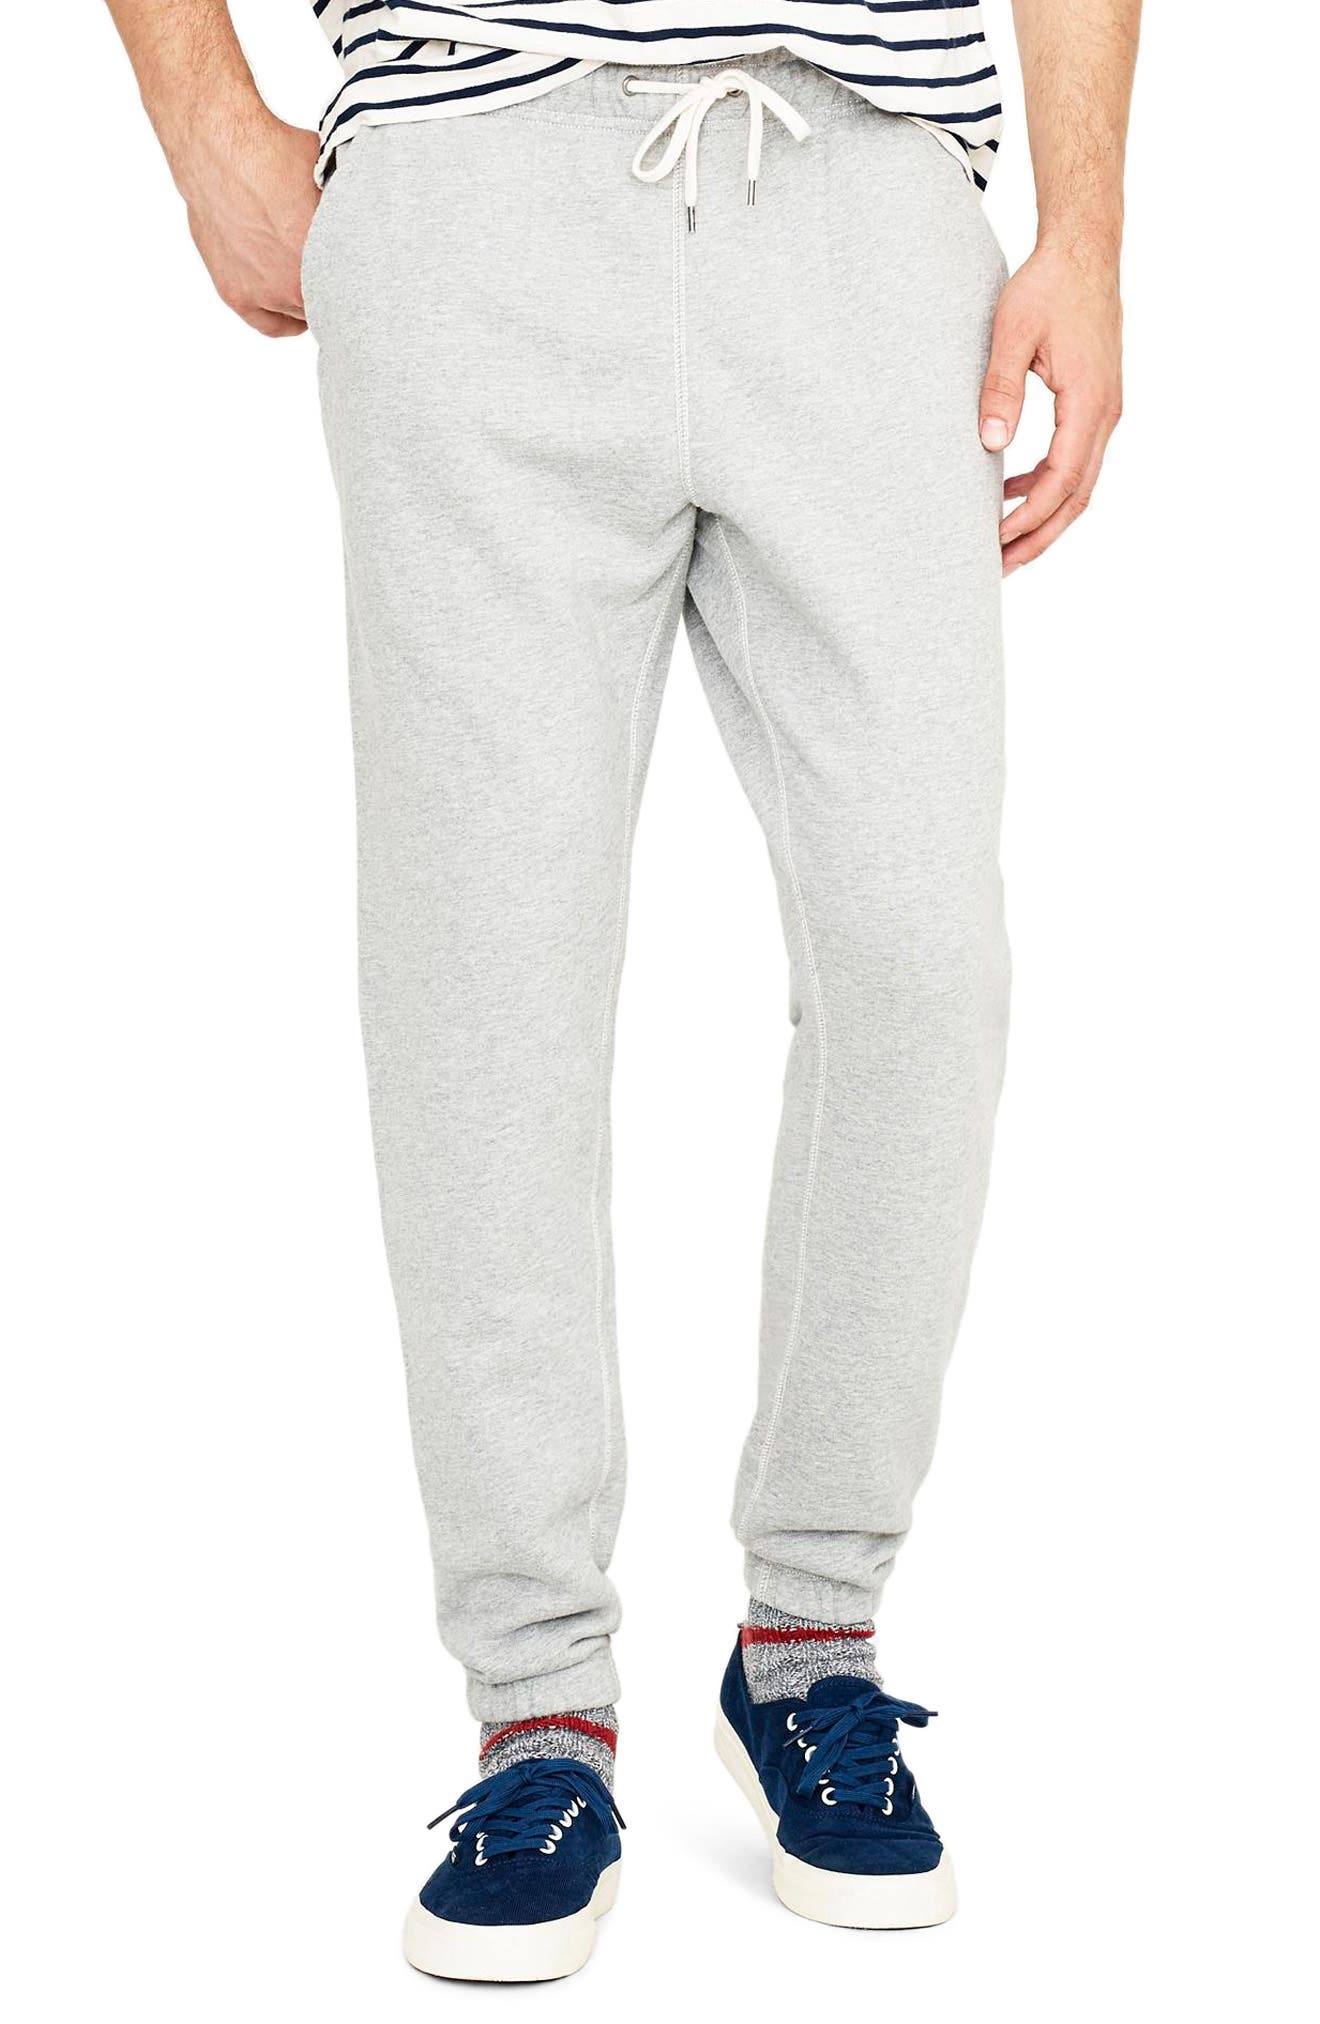 French Terry Sweatpants,                         Main,                         color, HEATHER GREY